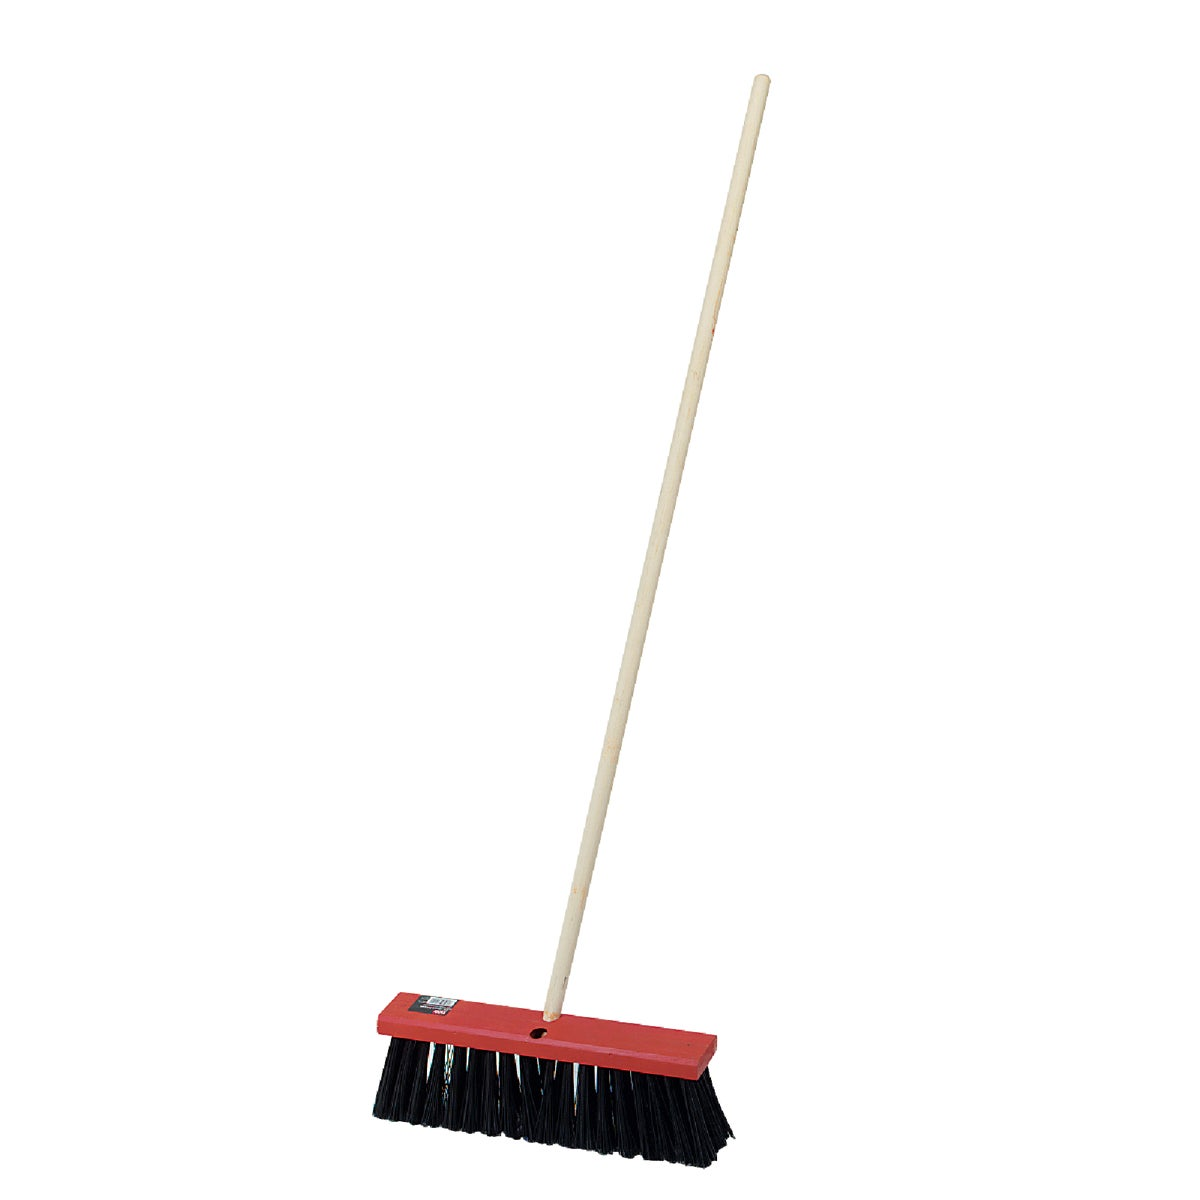 "18"" POLY PUSH BROOM - DIB89274 by D Q B Ind"